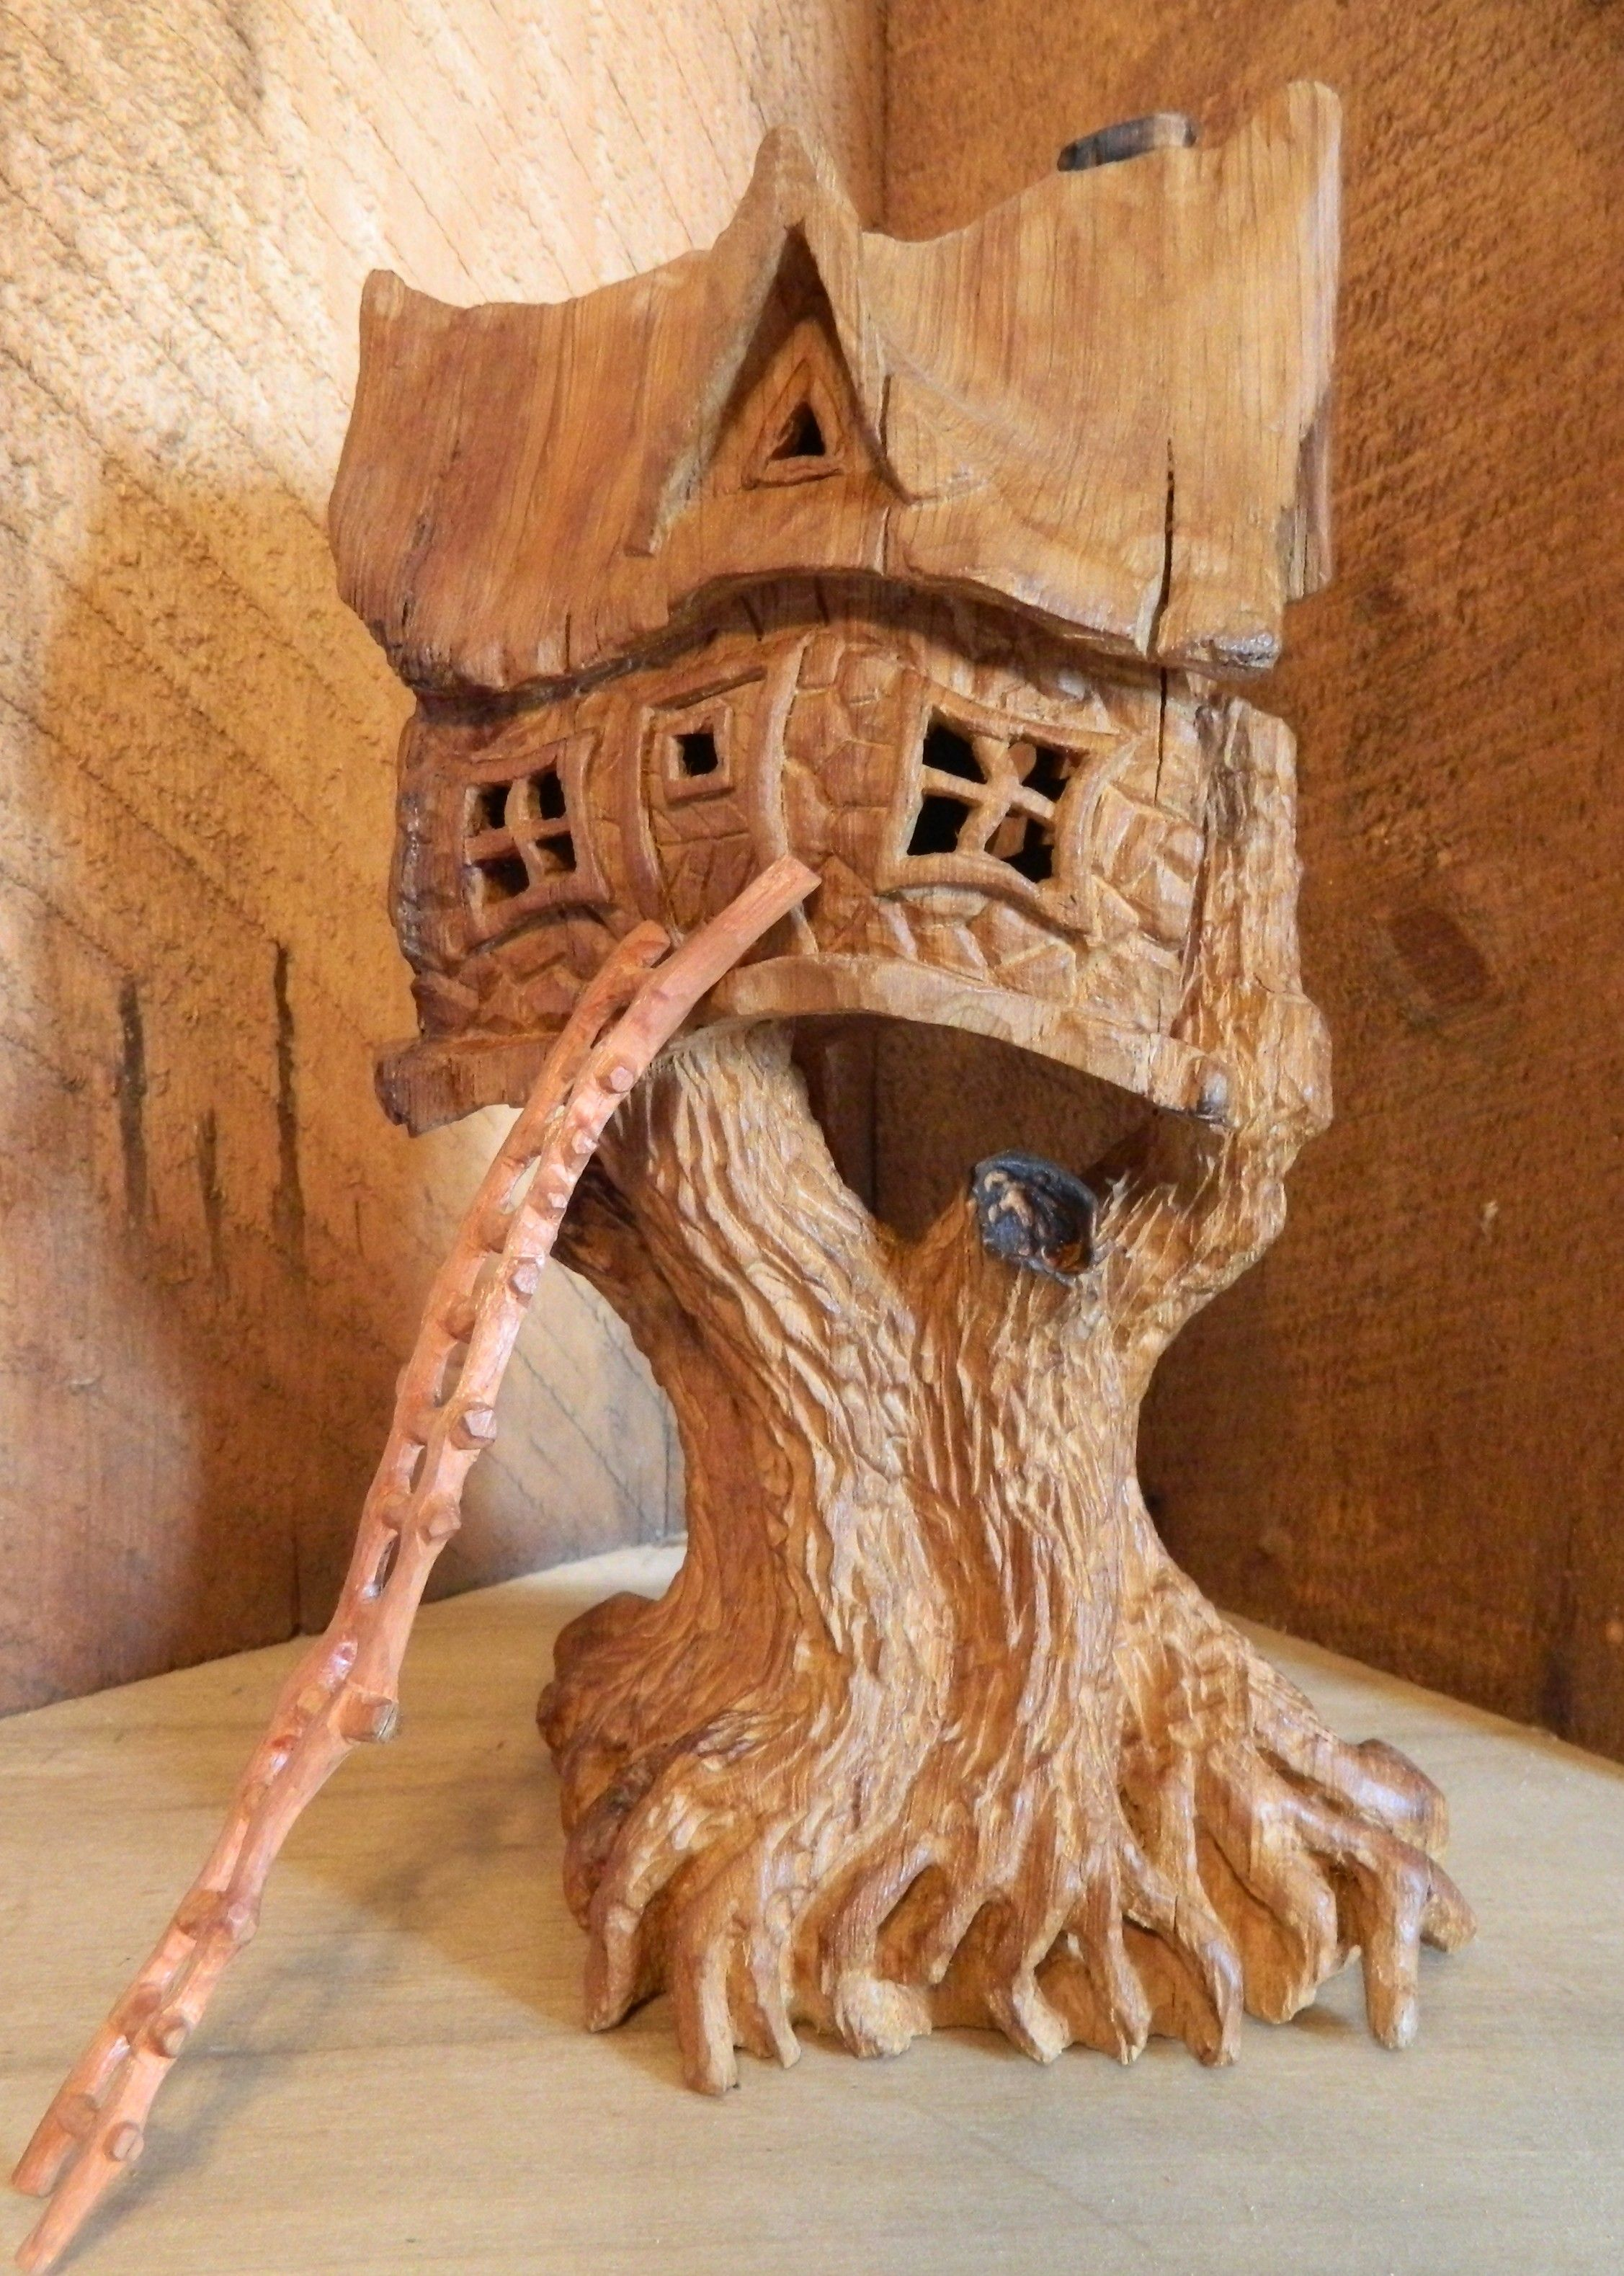 Cottonwood bark in the round tree house my wood carvings wood